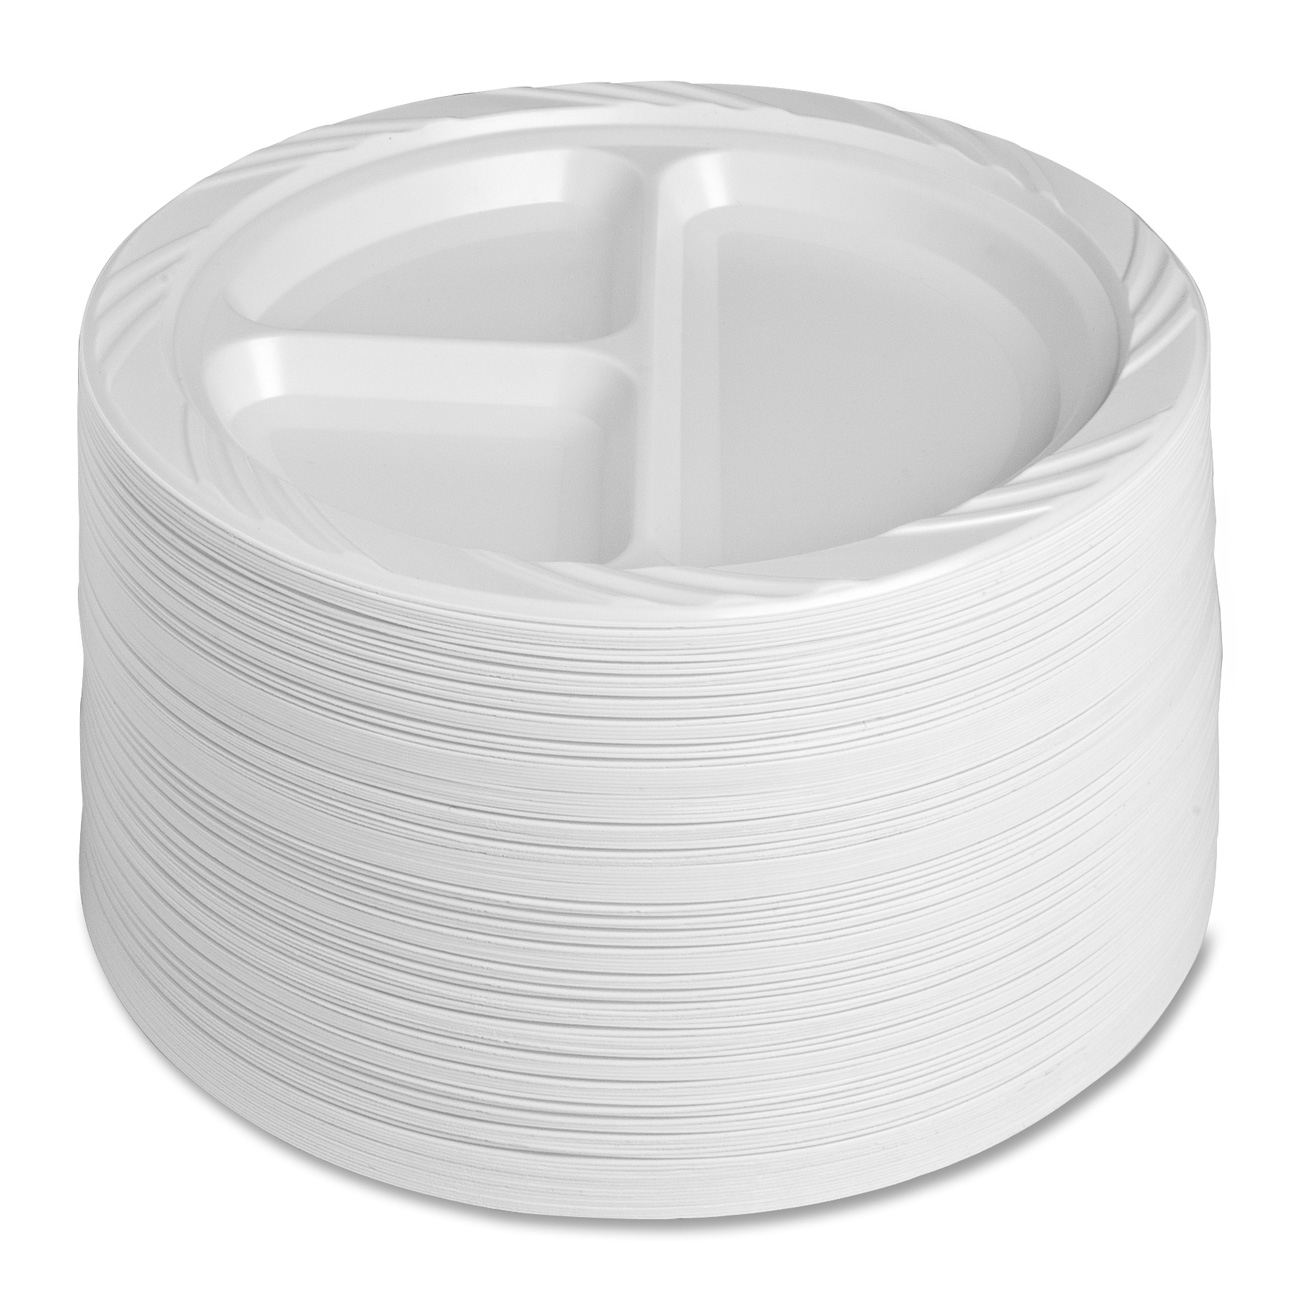 Genuine Joe 3-section Reusable Divided Plates - 9  Diameter Plate - Plastic - Disposable - White - 500 Piece[s] / Carton (10425ct) - Walmart.com  sc 1 st  Walmart : large disposable plates - pezcame.com